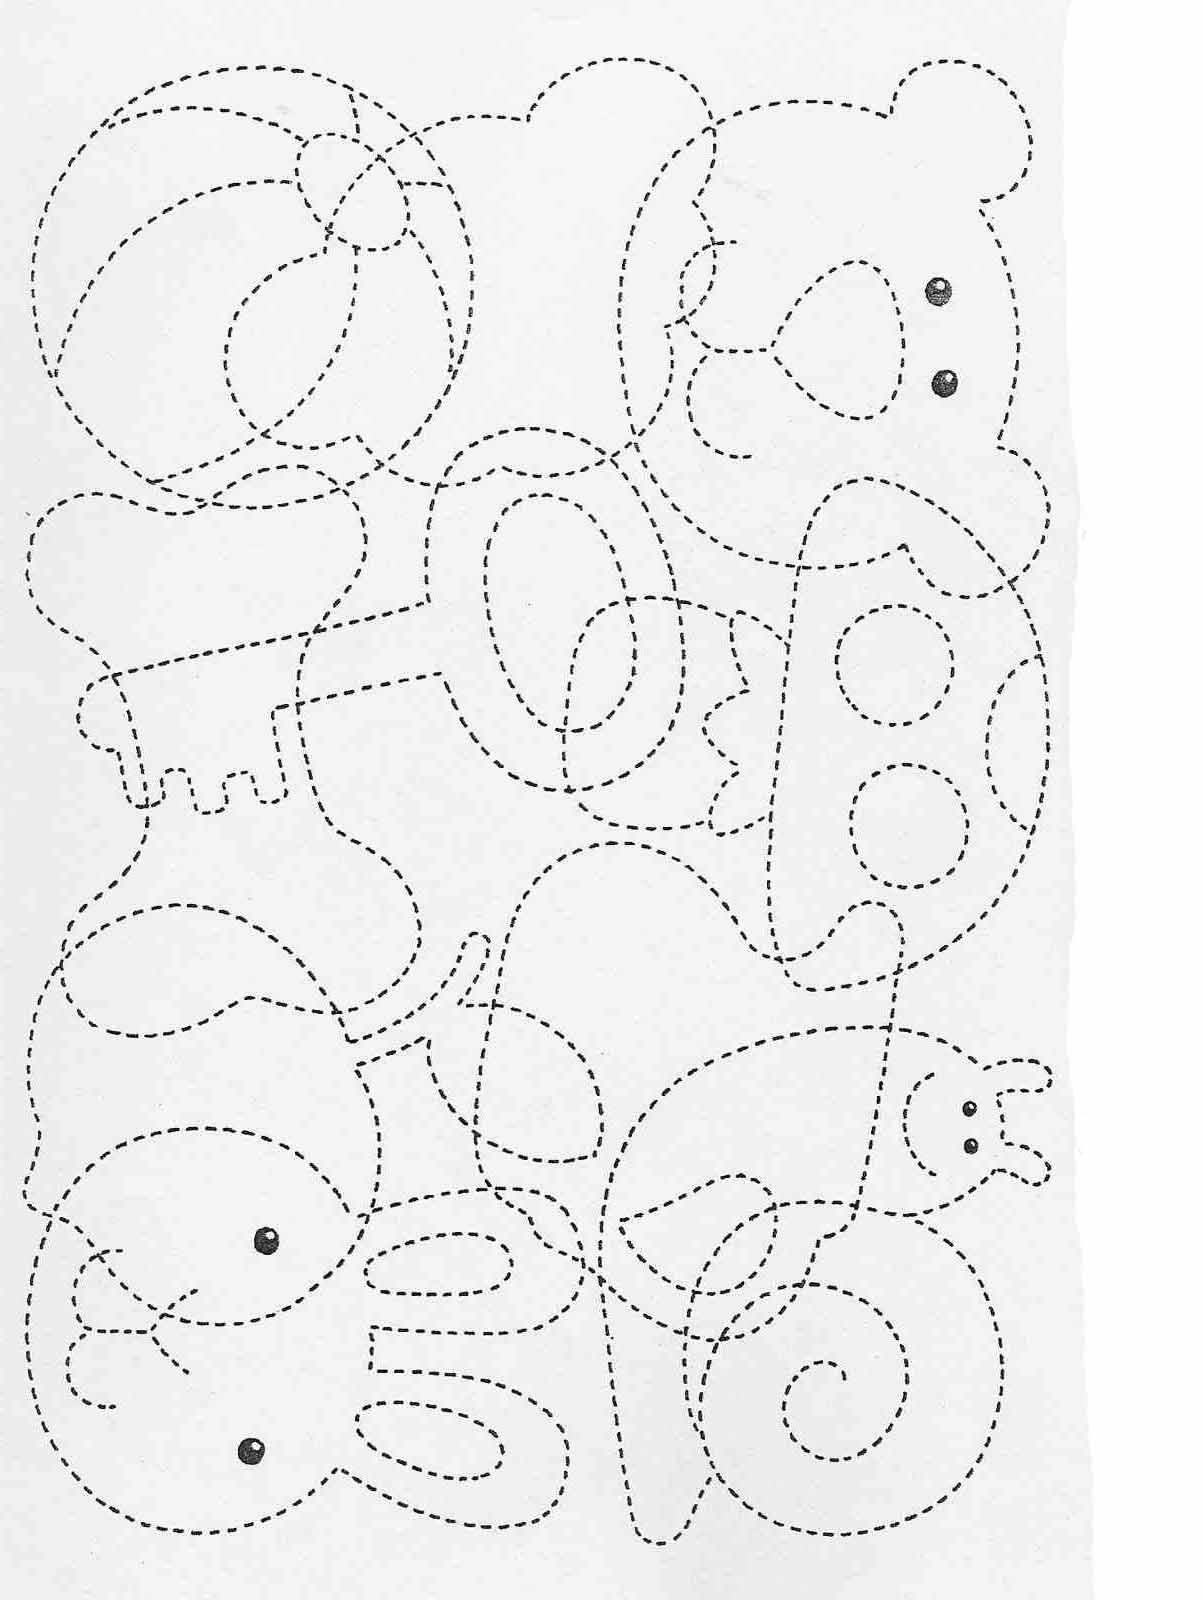 Printable Activities For Kids Complete The Drawings 73